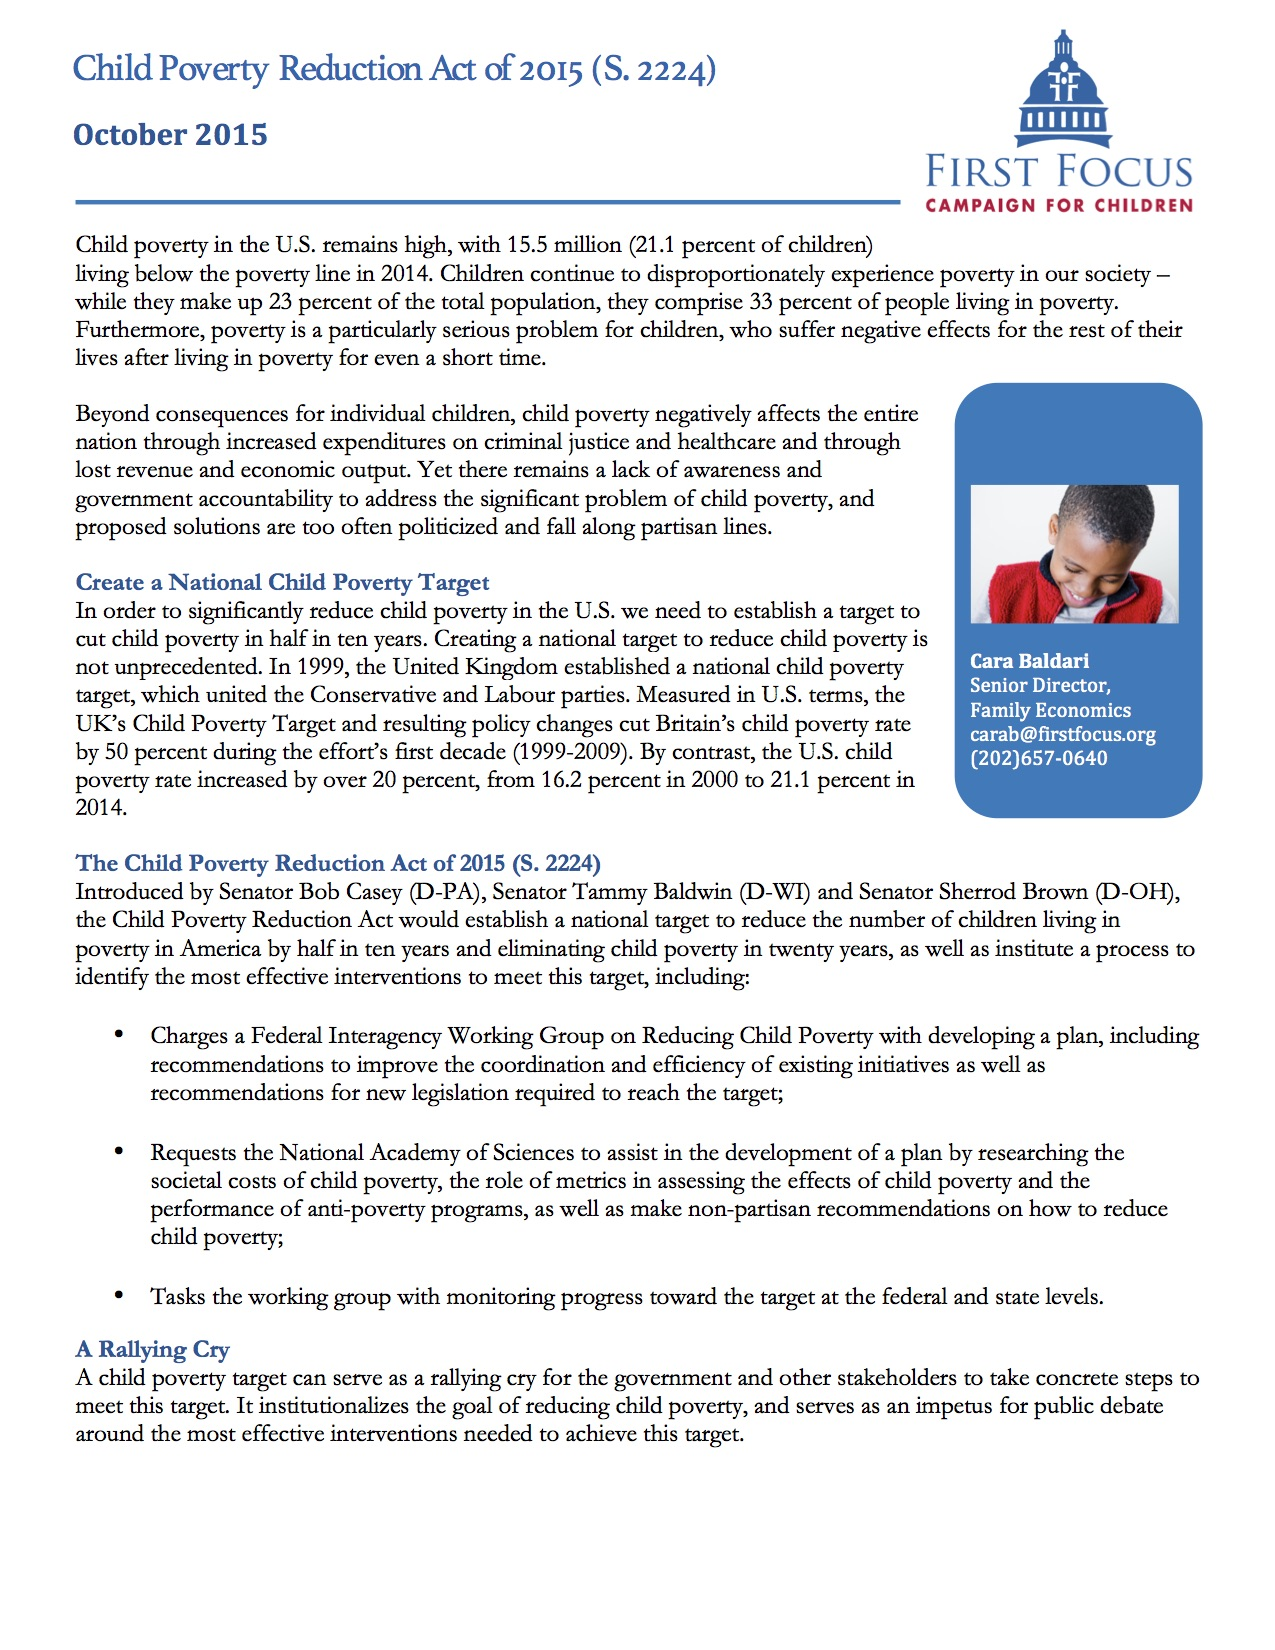 Child Poverty Reduction Act Fact Sheet - Senate version